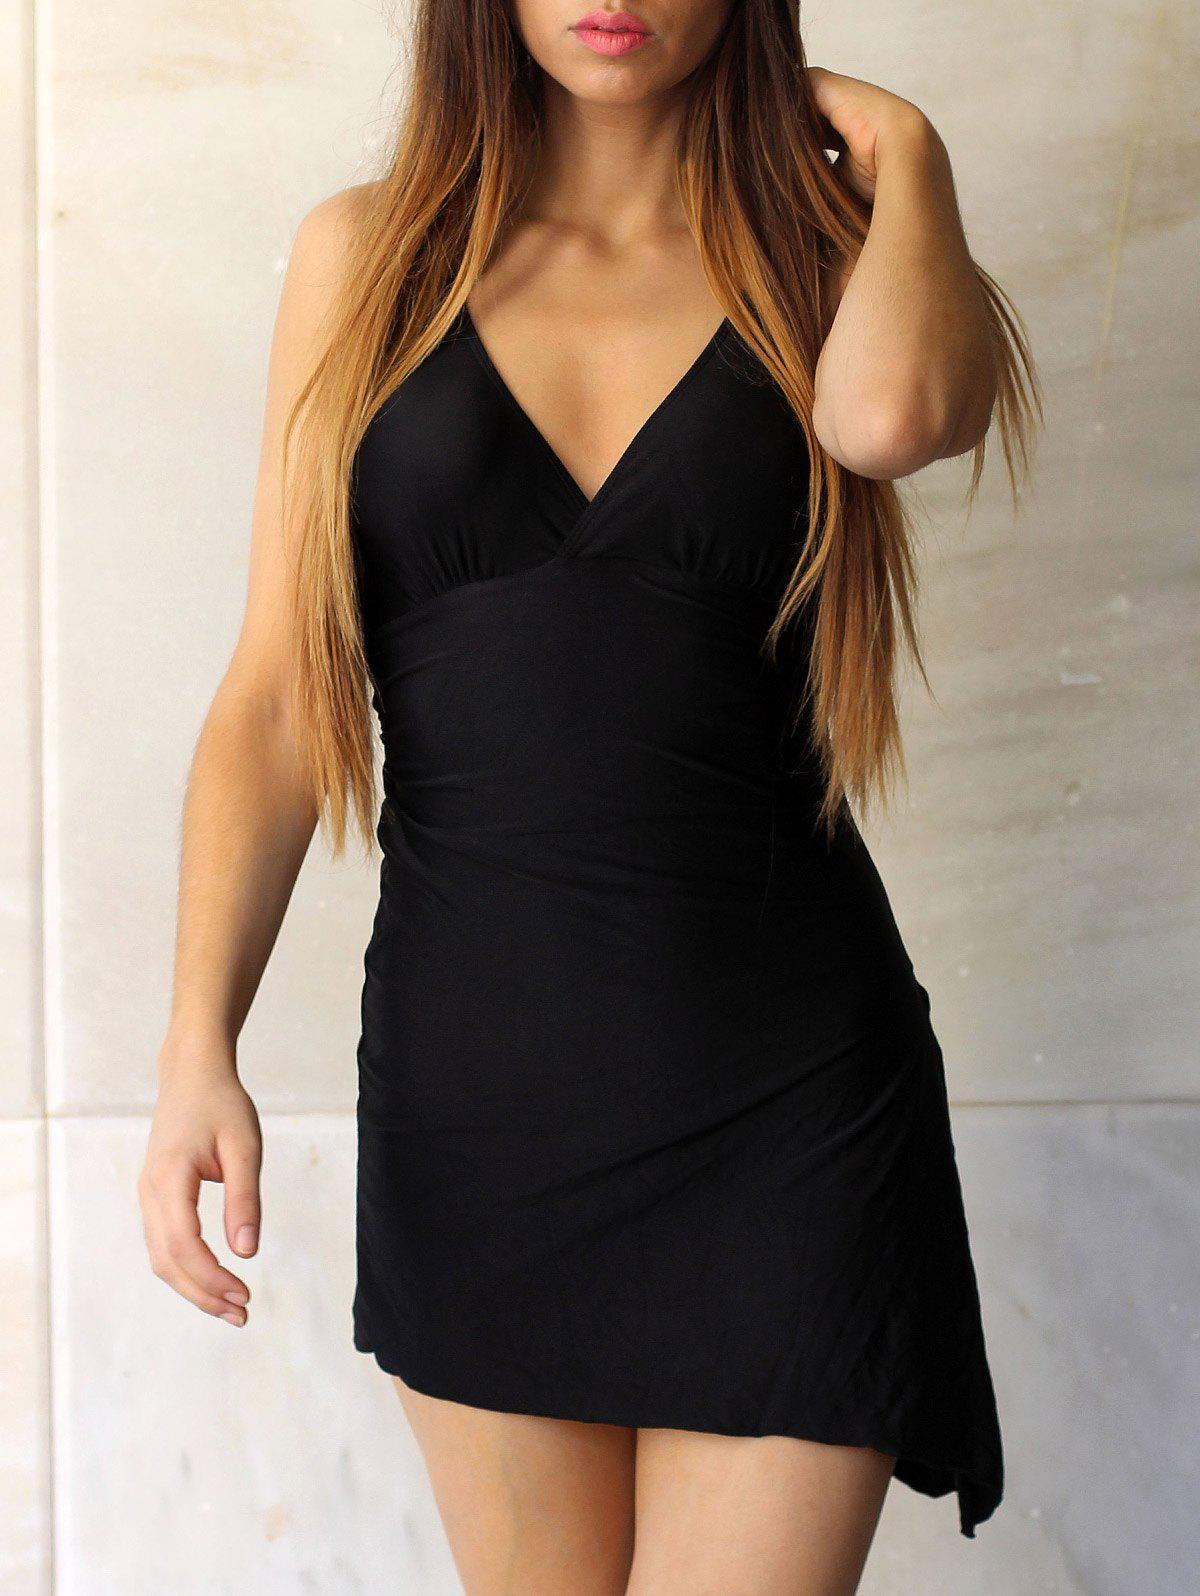 Alluring Women's Plunging Neck Sleeveless Black One-Piece Swimsuit